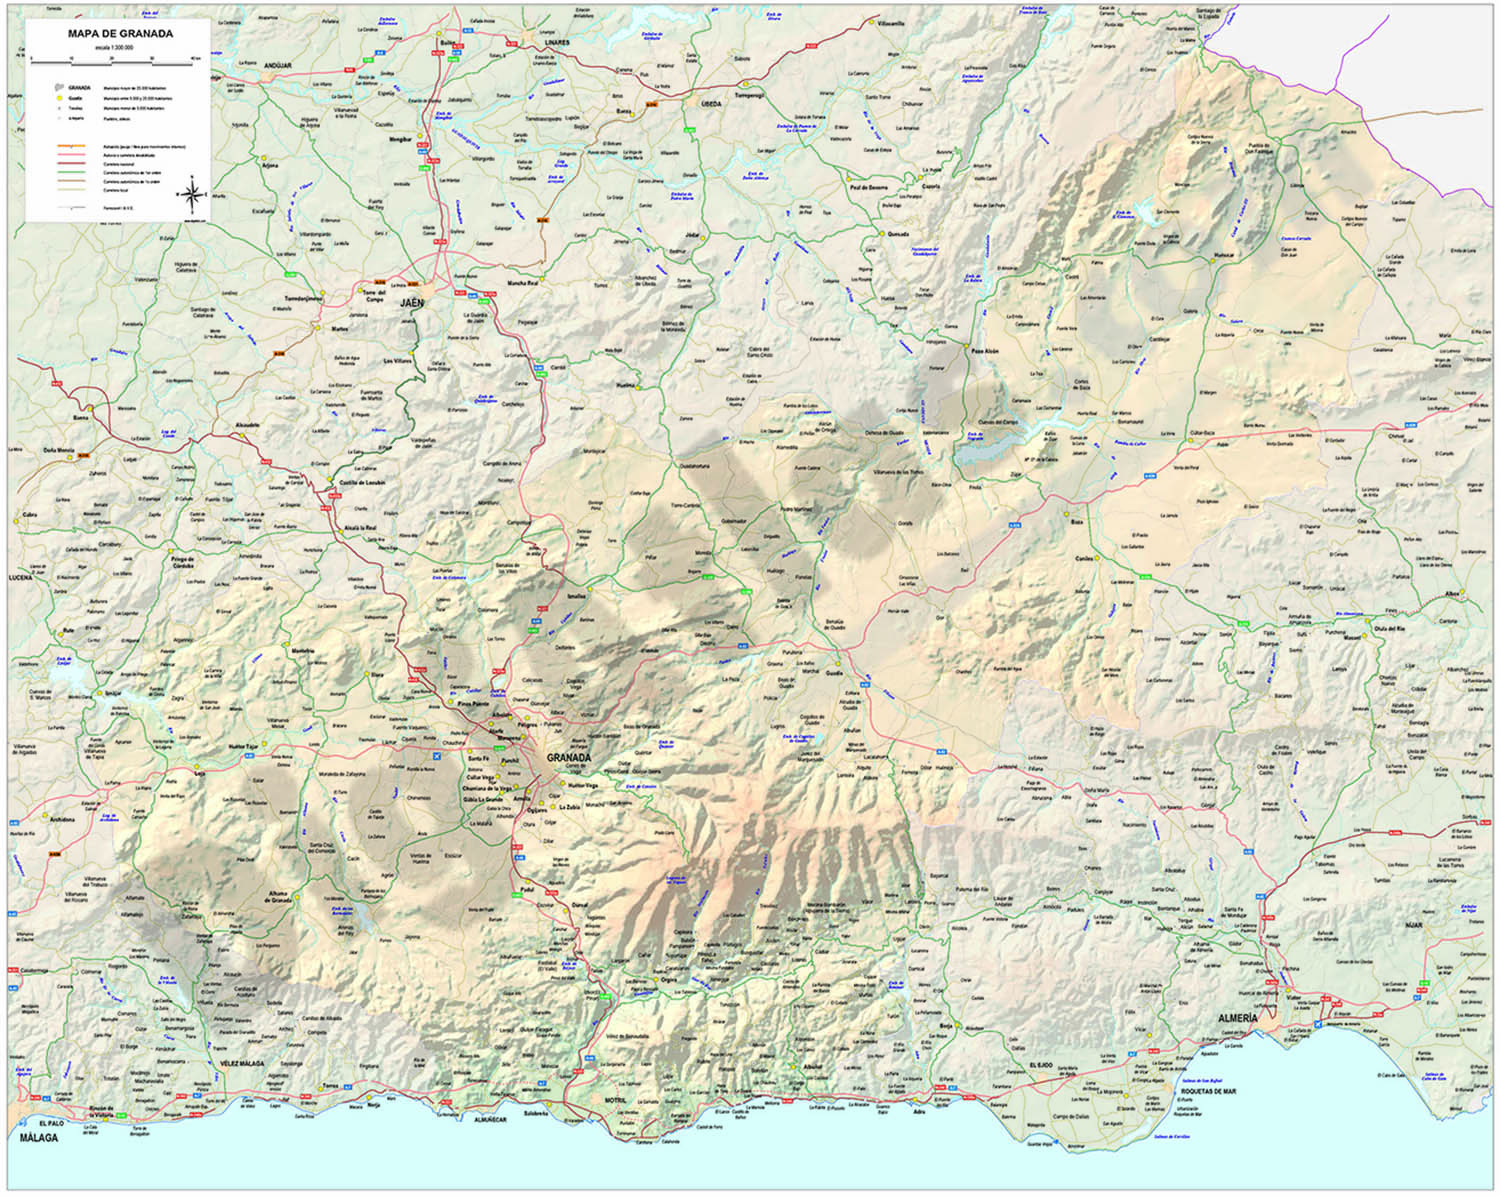 Map of province of Granada (Spain)